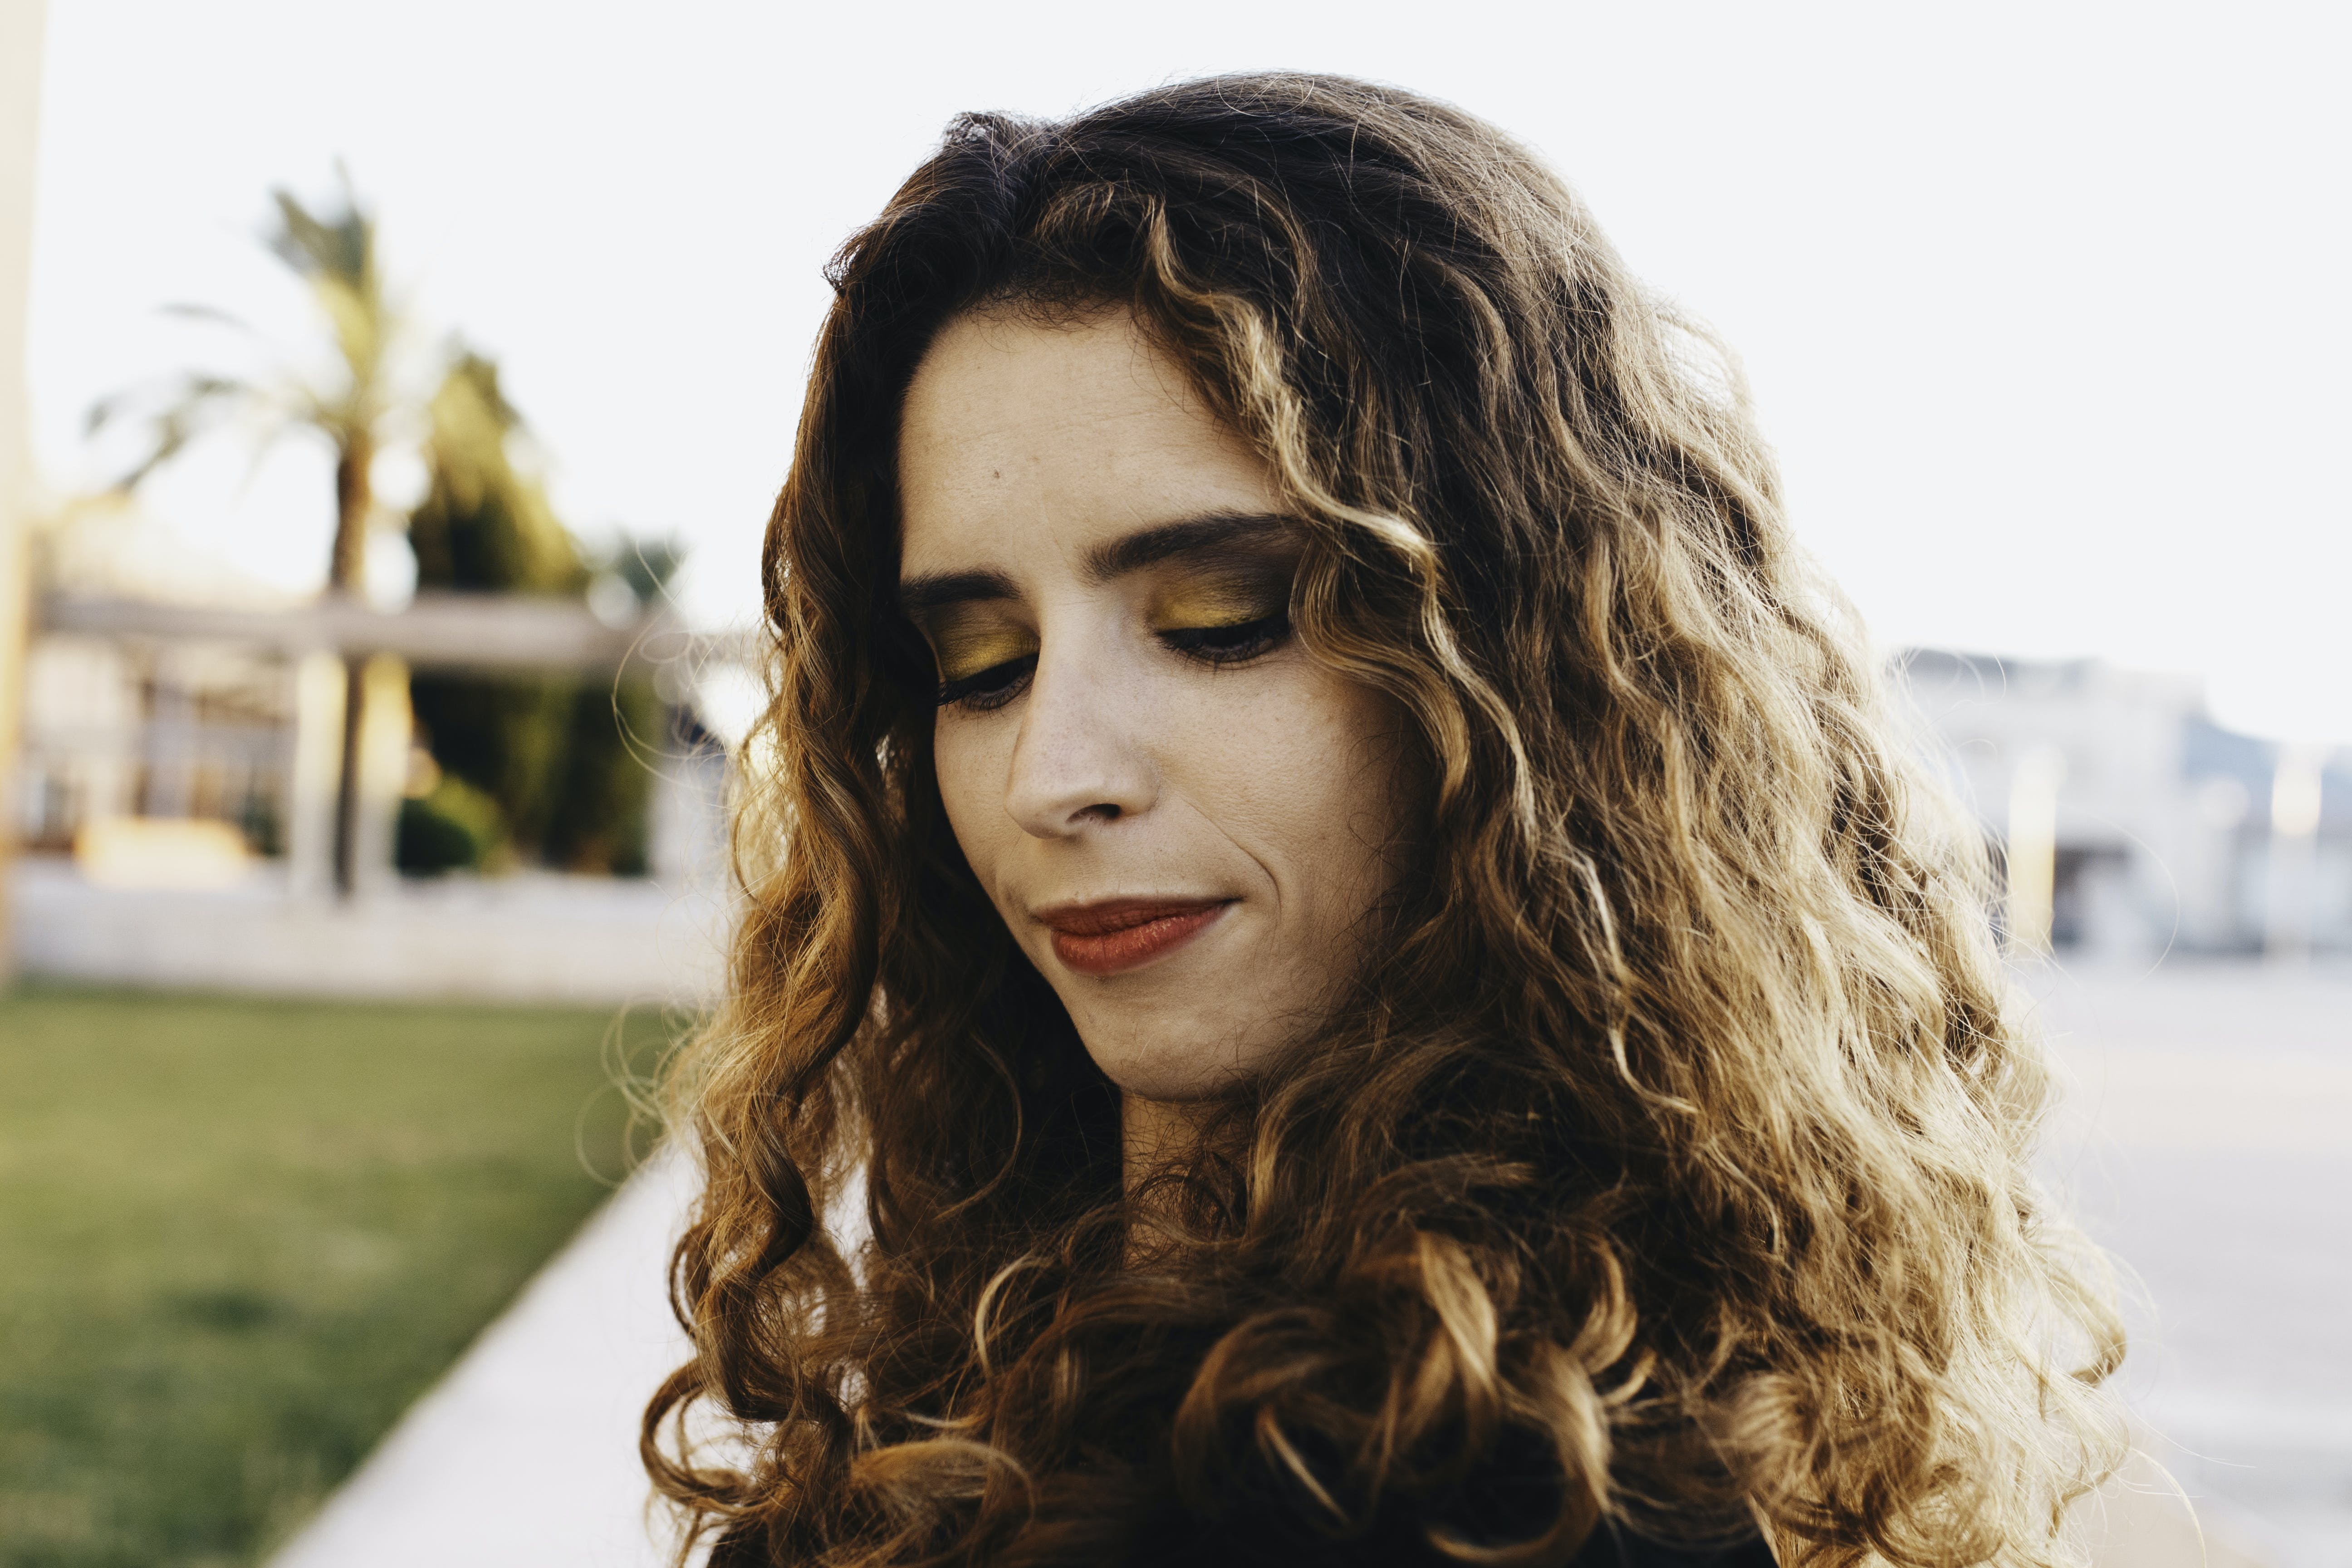 Curly Brown Haired Woman Wearing Black Shirt With Red Lipstick Looking Down